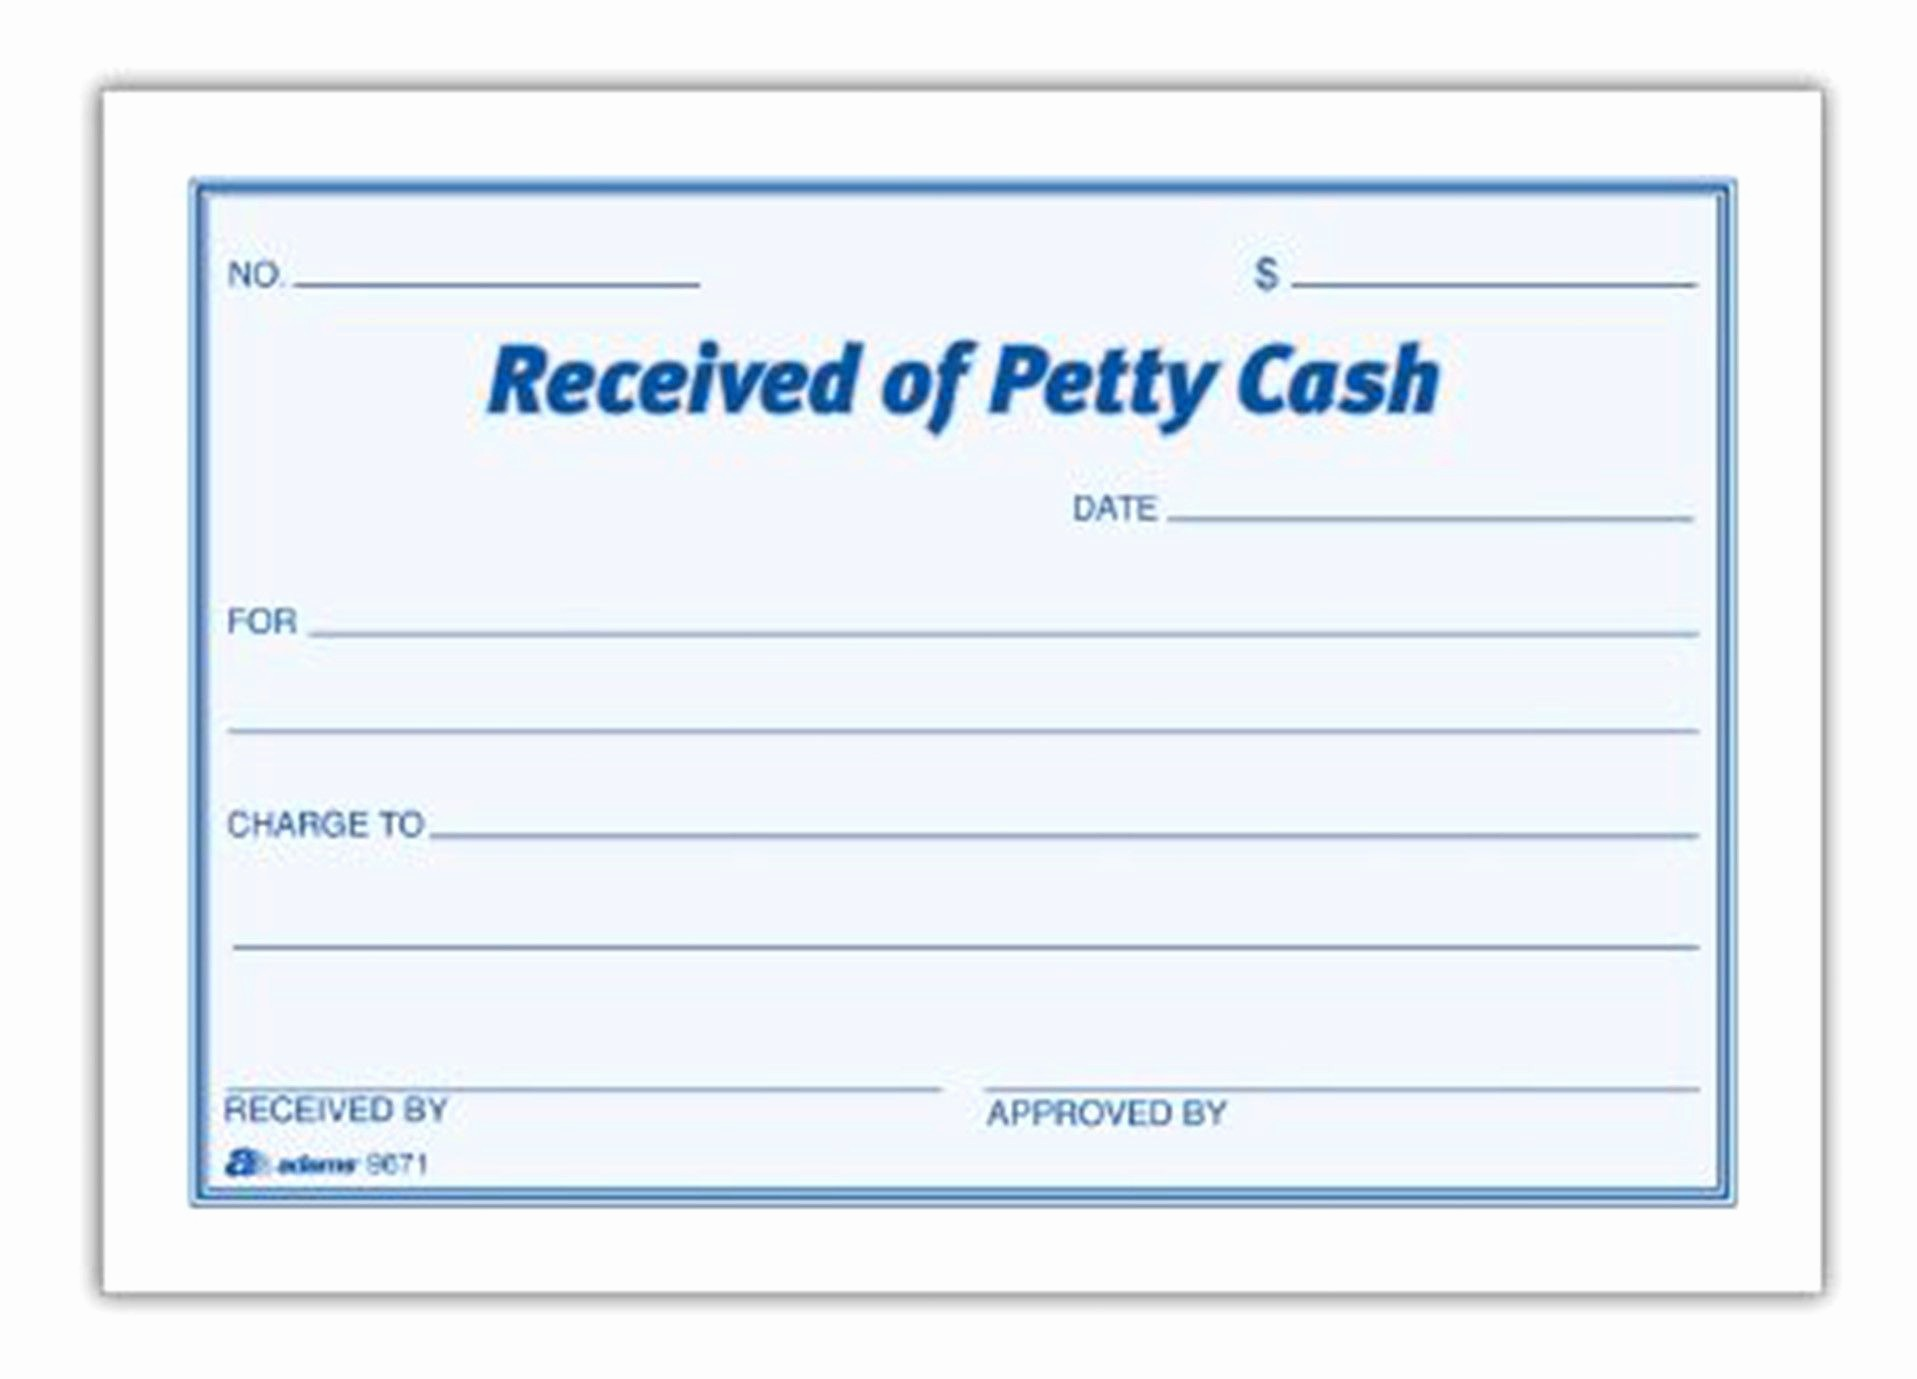 Petty Cash Receipt Template Free Luxury Petty Cash Receipt Pad Set Of 16 Accounting